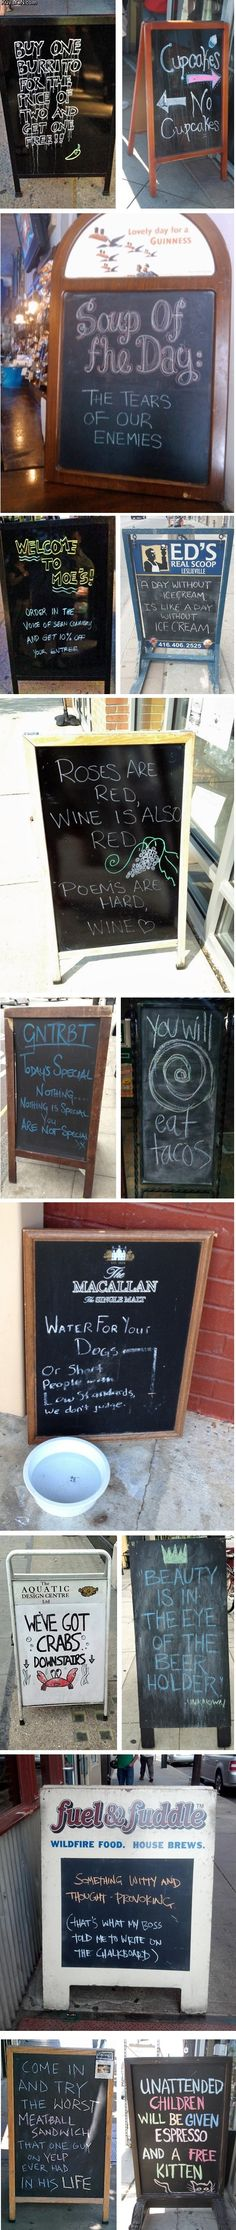 14 Snarky Sandwich Boards [Pic] | I Am Bored